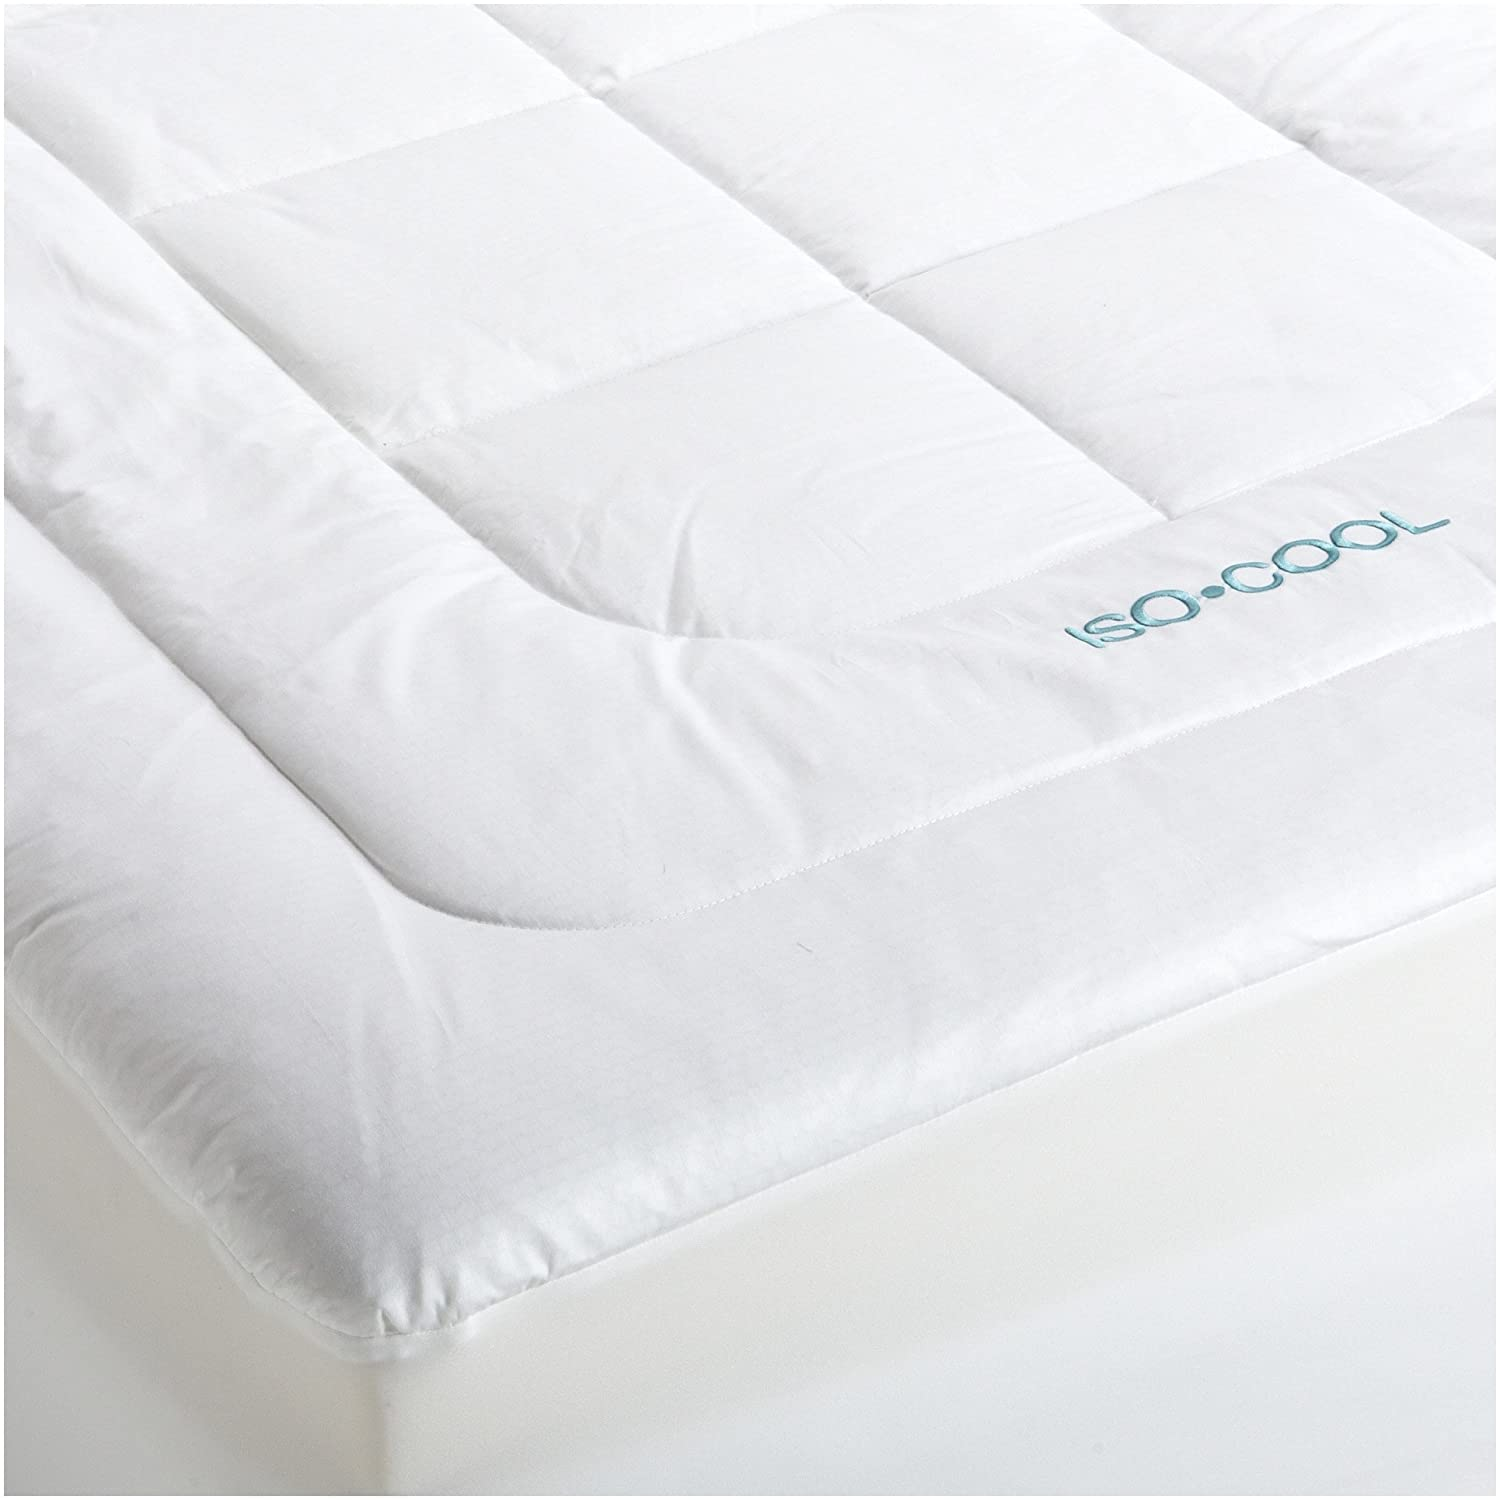 amazon com sleepbetter iso cool memory foam mattress topper with